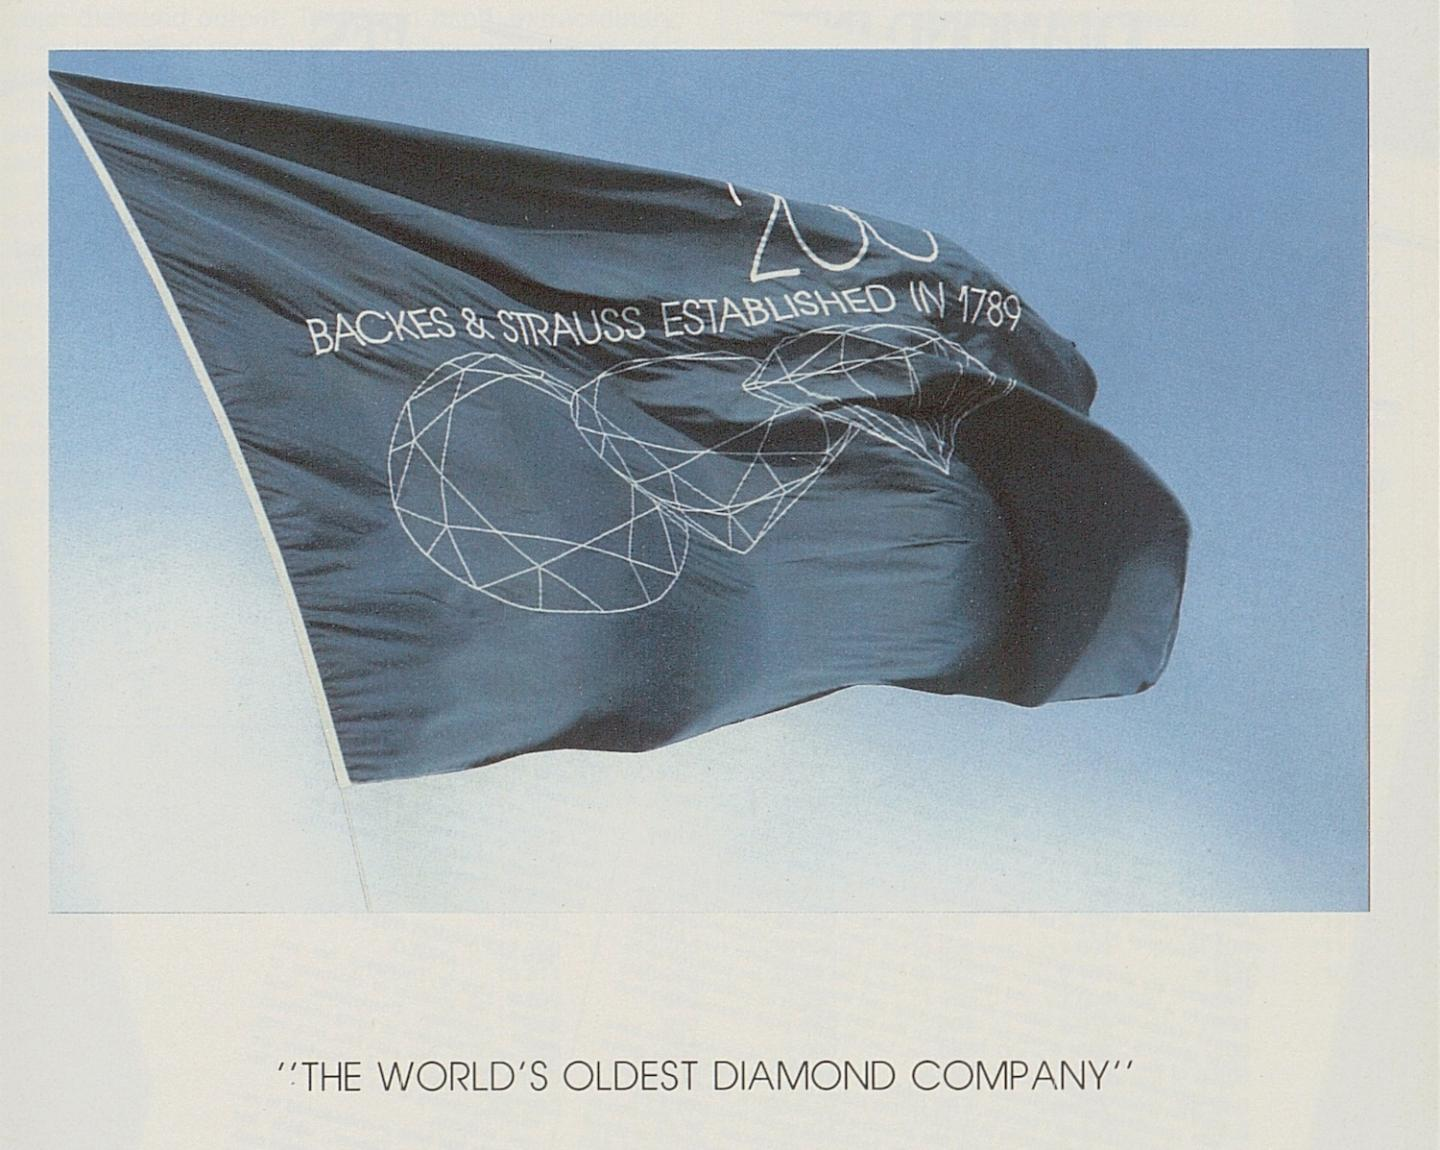 """The world's oldest diamond company"": an advertisement by Backes & Strauss in Europa Star from 1990."